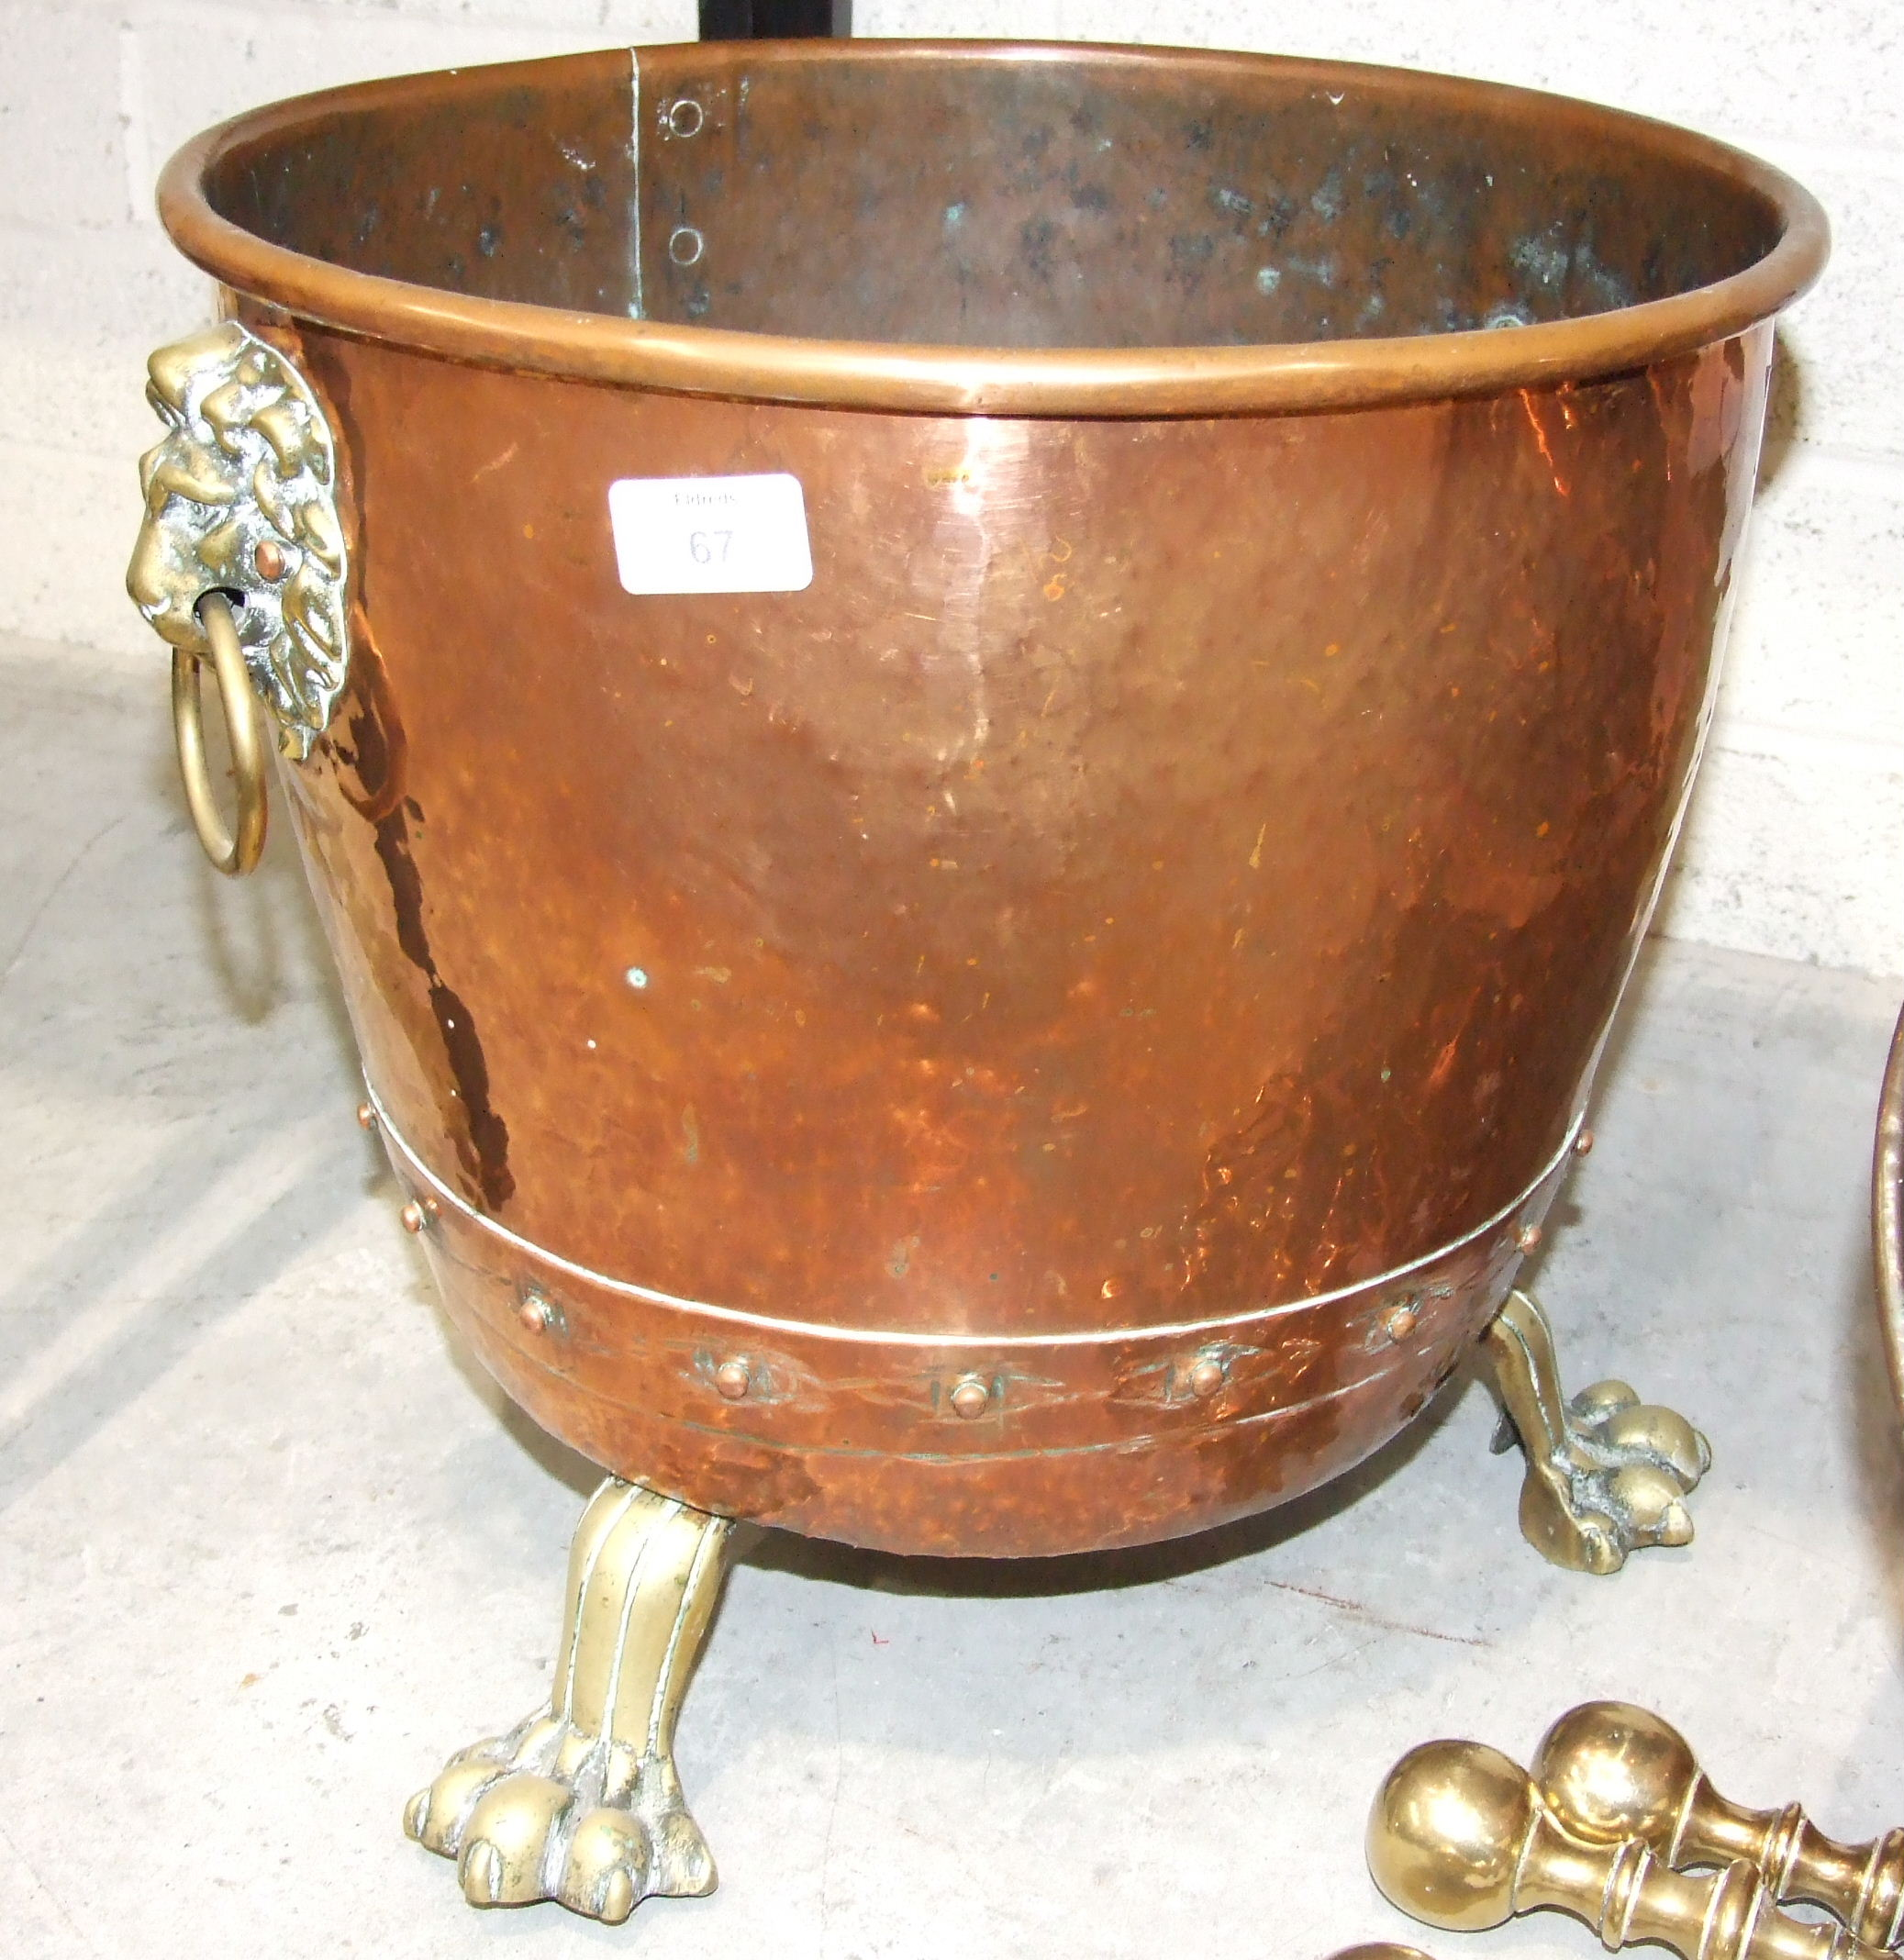 Lot 67 - A copper coal bucket with lion's head handles and claw feet, 38cm diameter, 38cm high, a copper coal